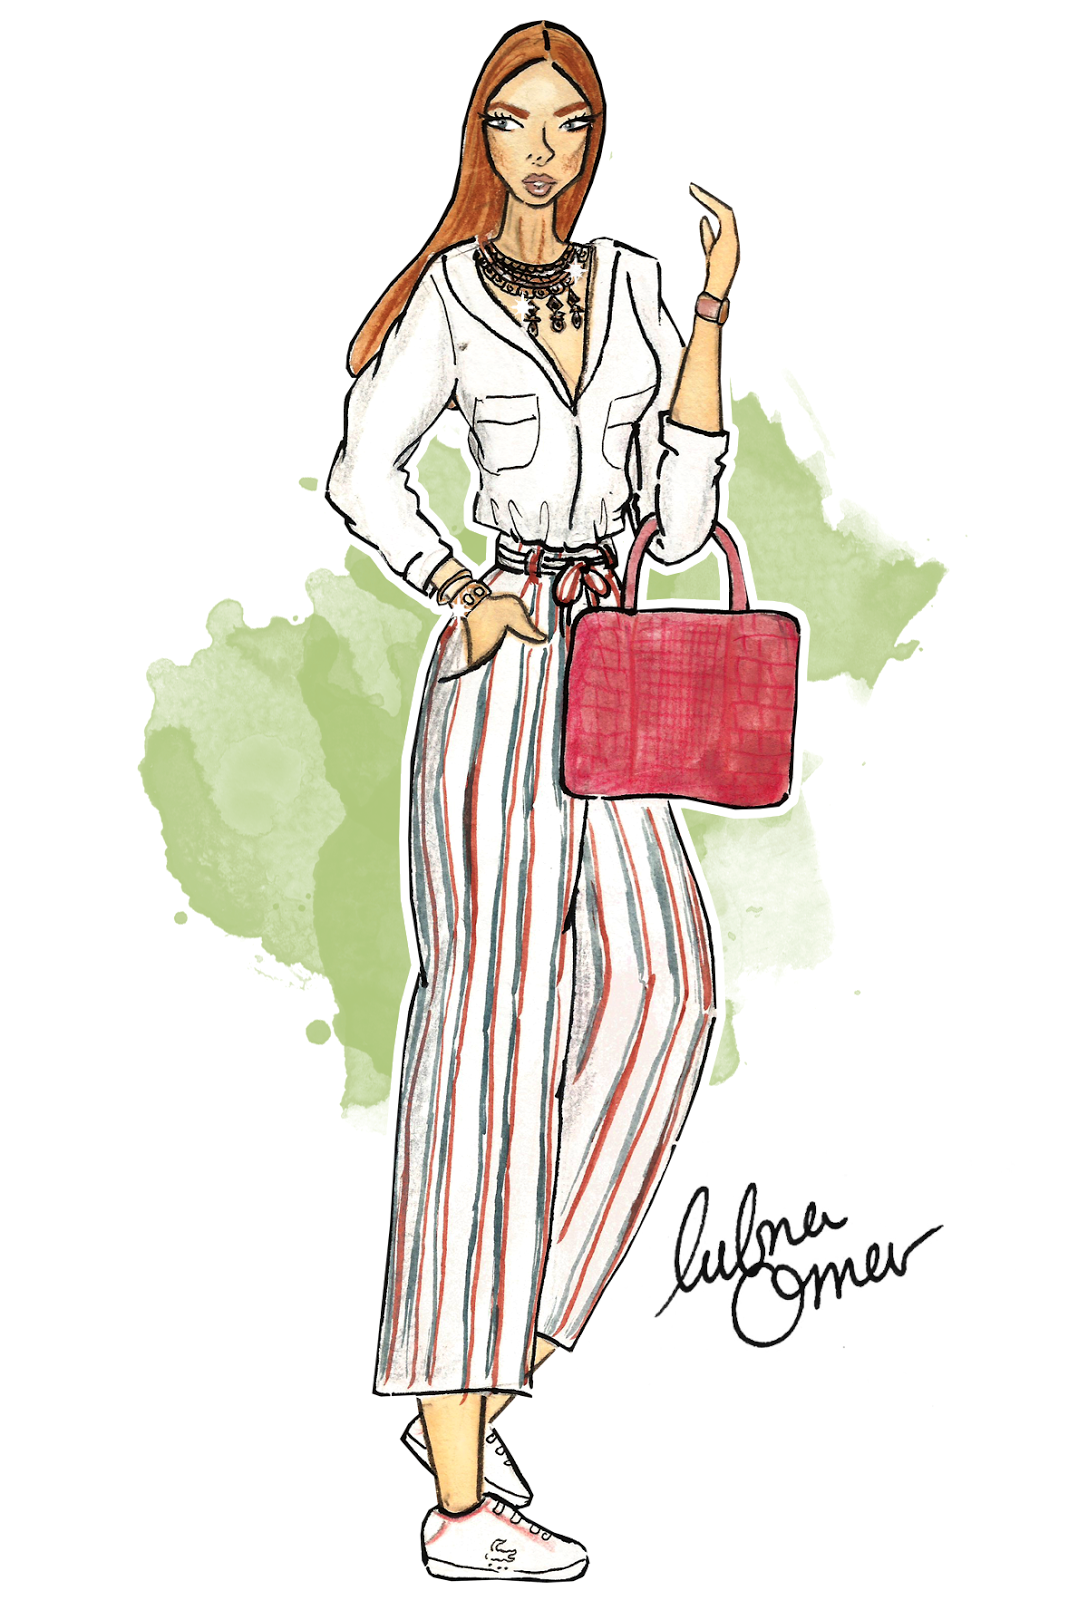 zaful online shopping culottes streetstyle inspiration lubna omar illustration